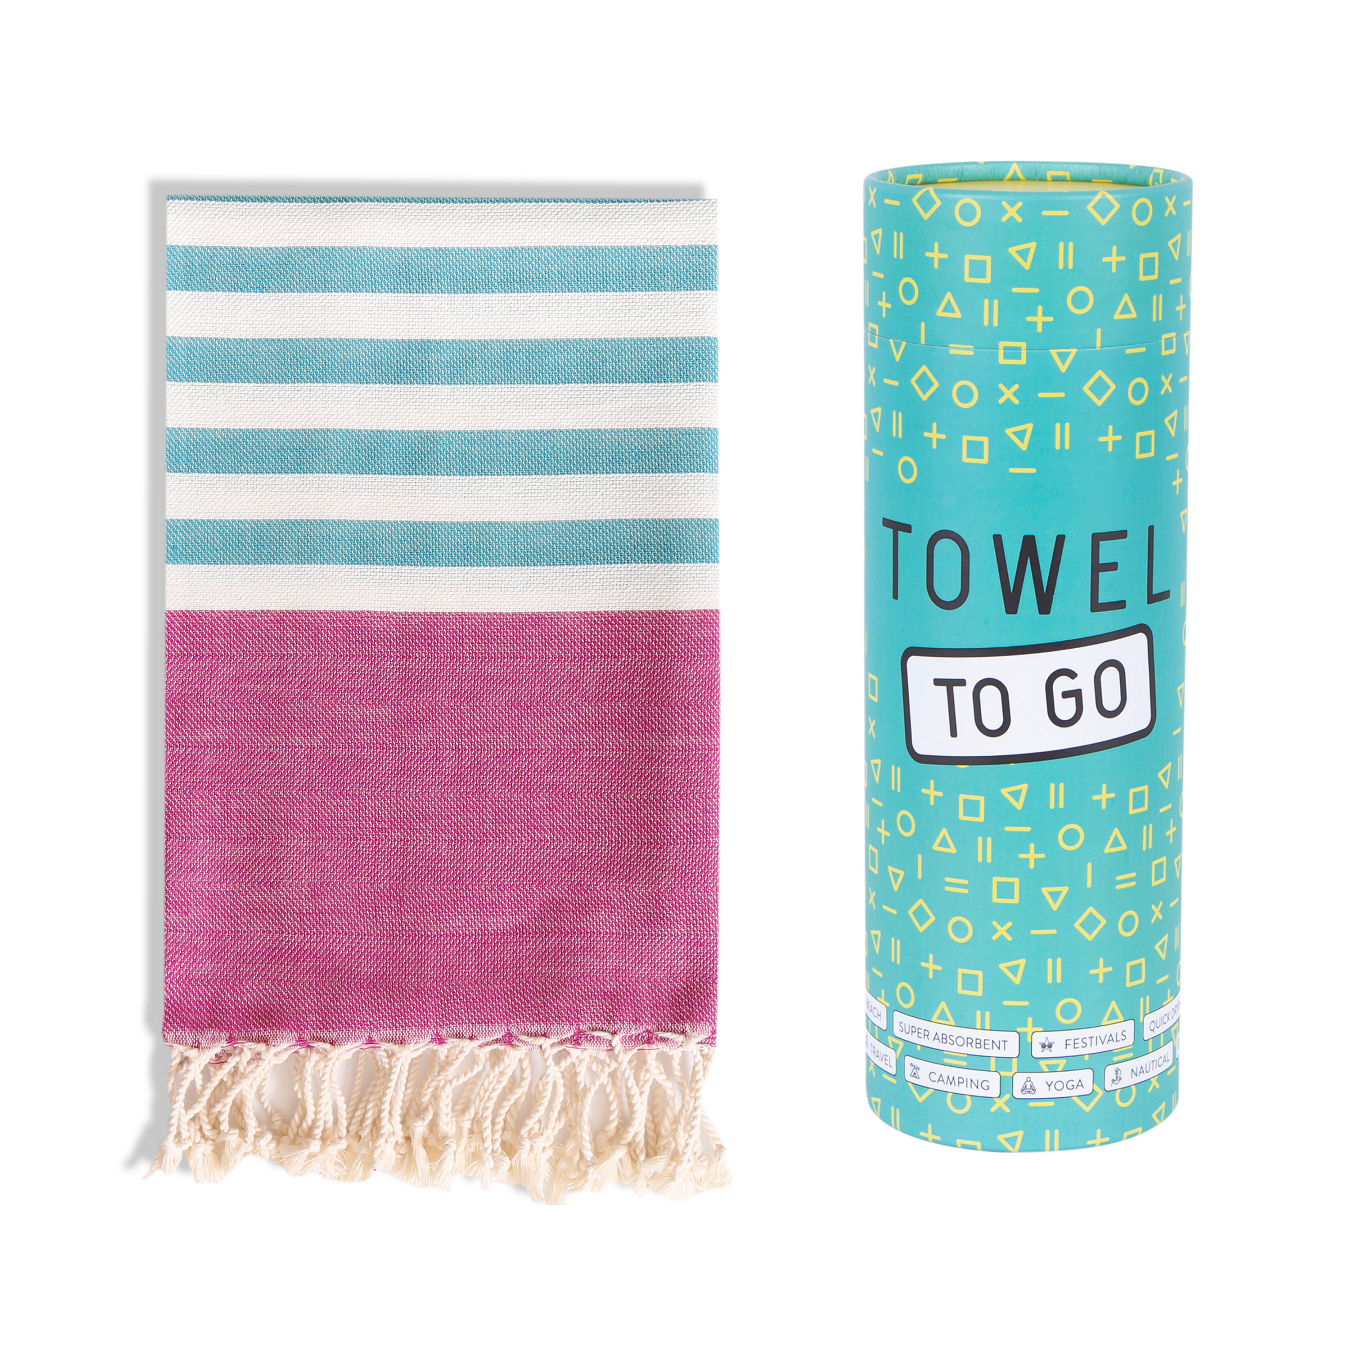 Towel to Go